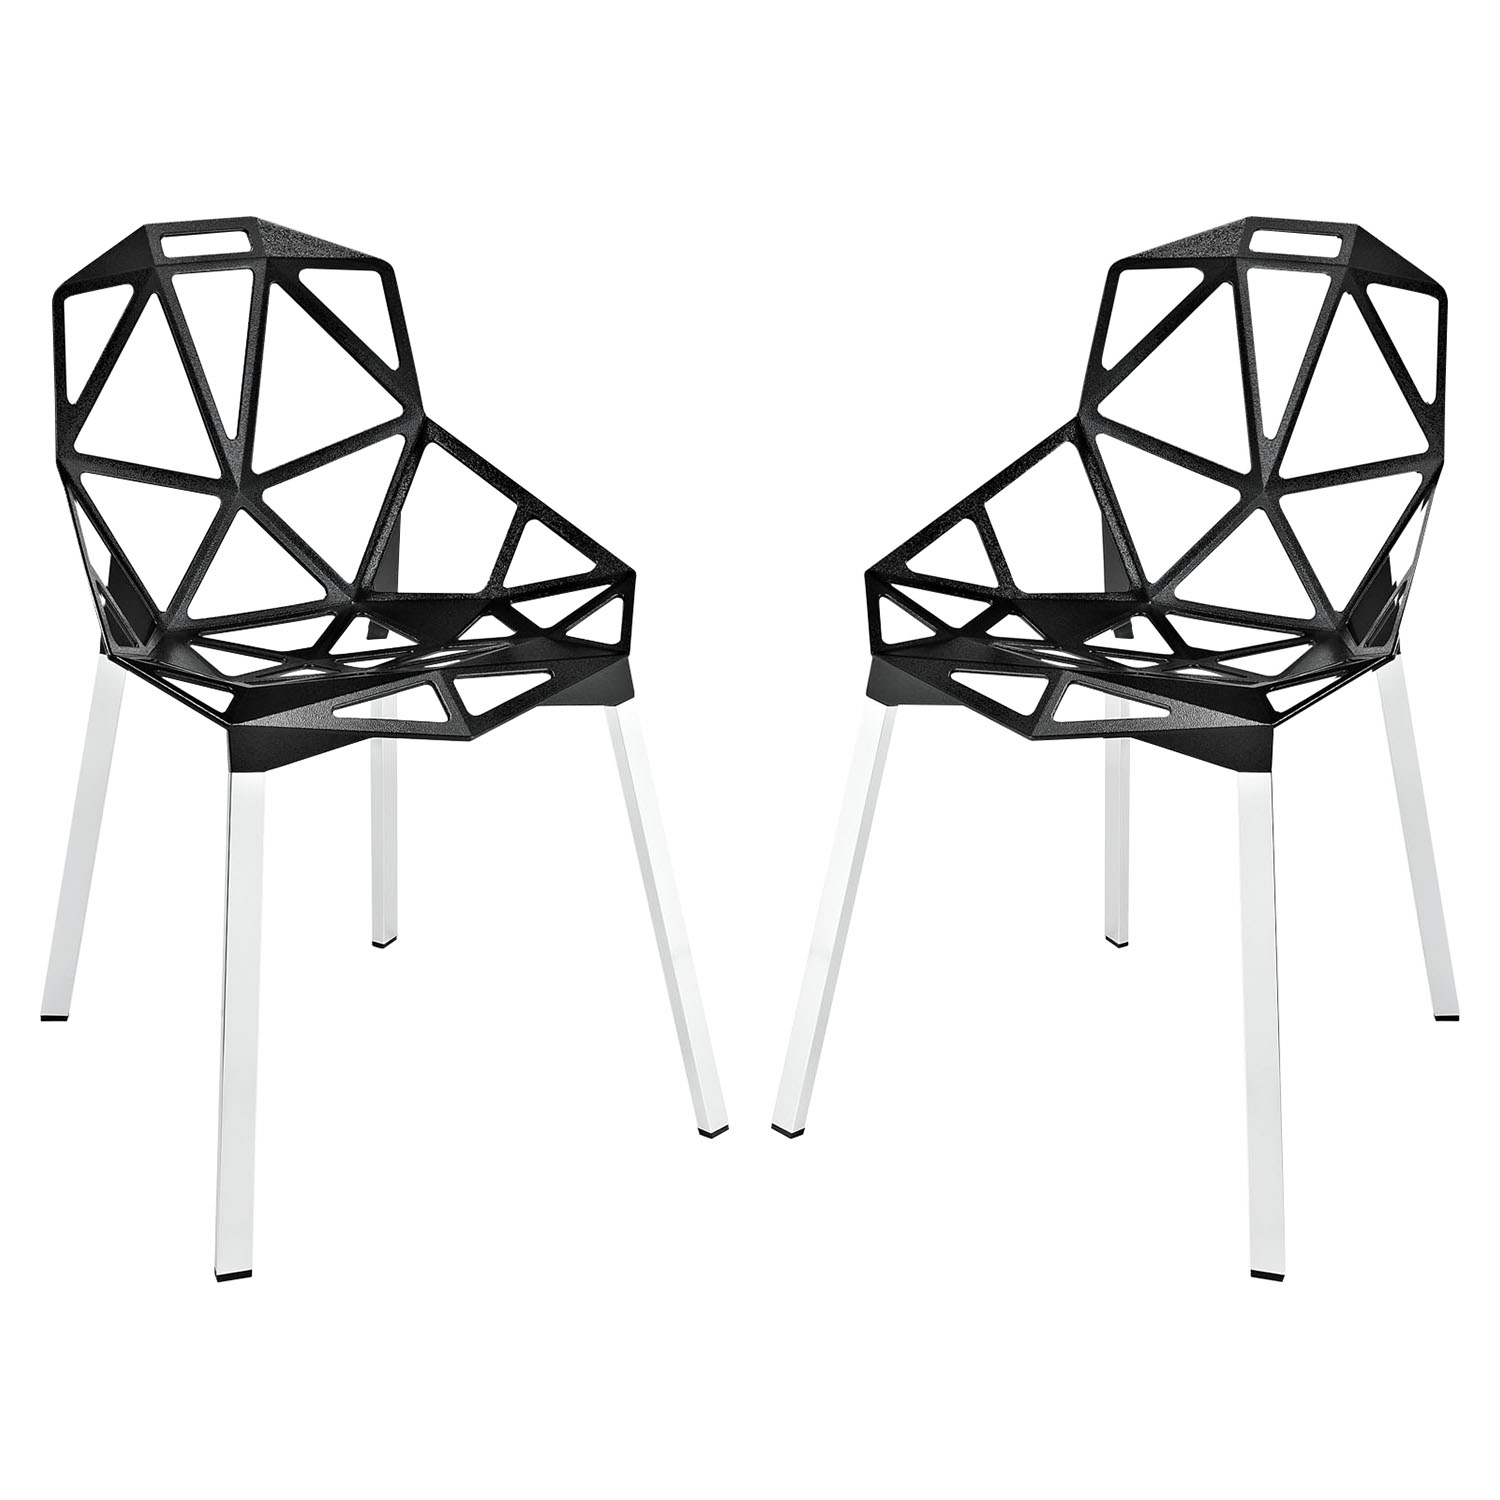 Connections Aluminum Dining Chair - Black (Set of 2)